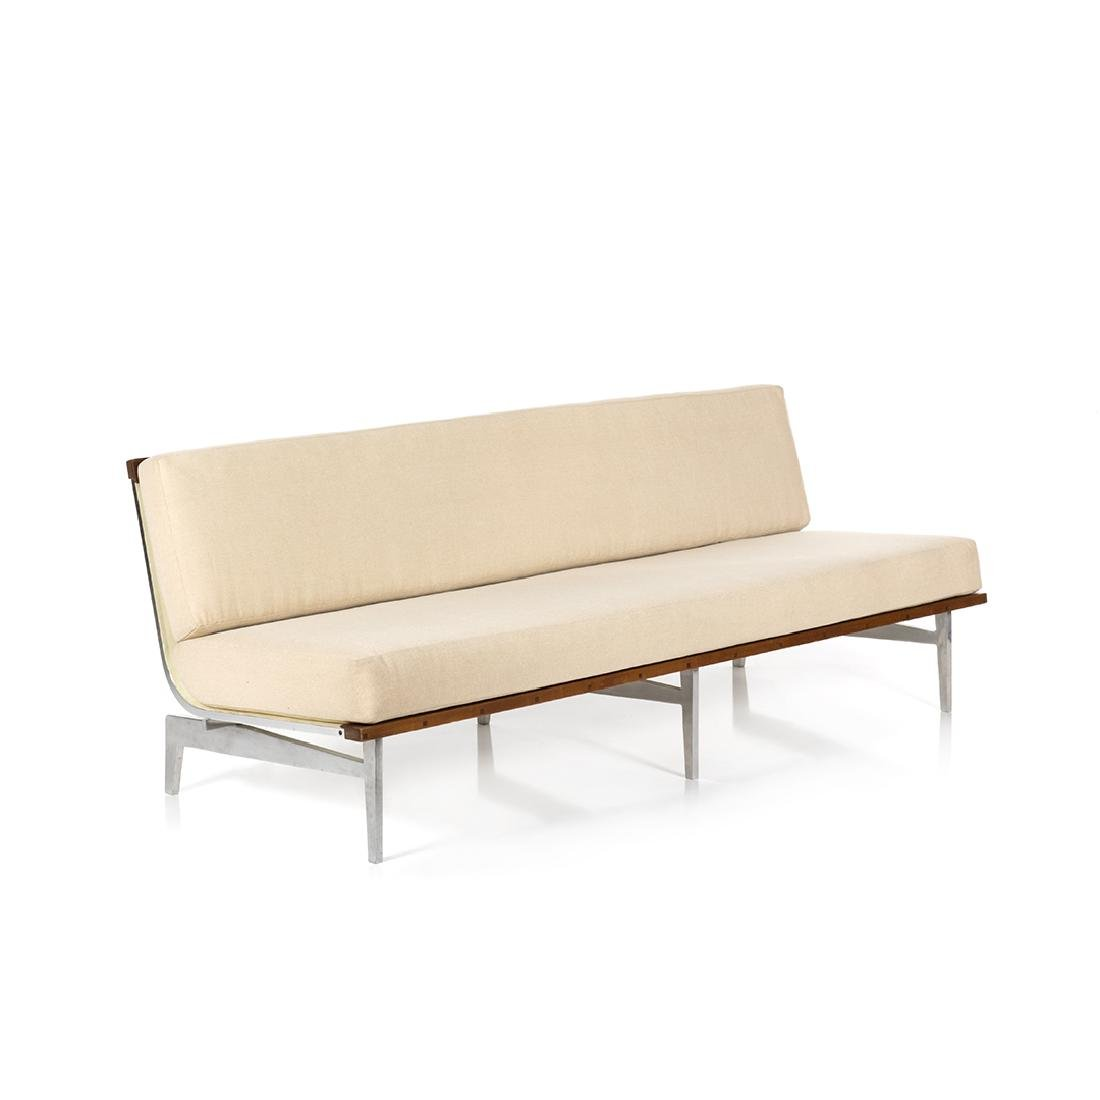 Lee DeSell Architectural Sofa